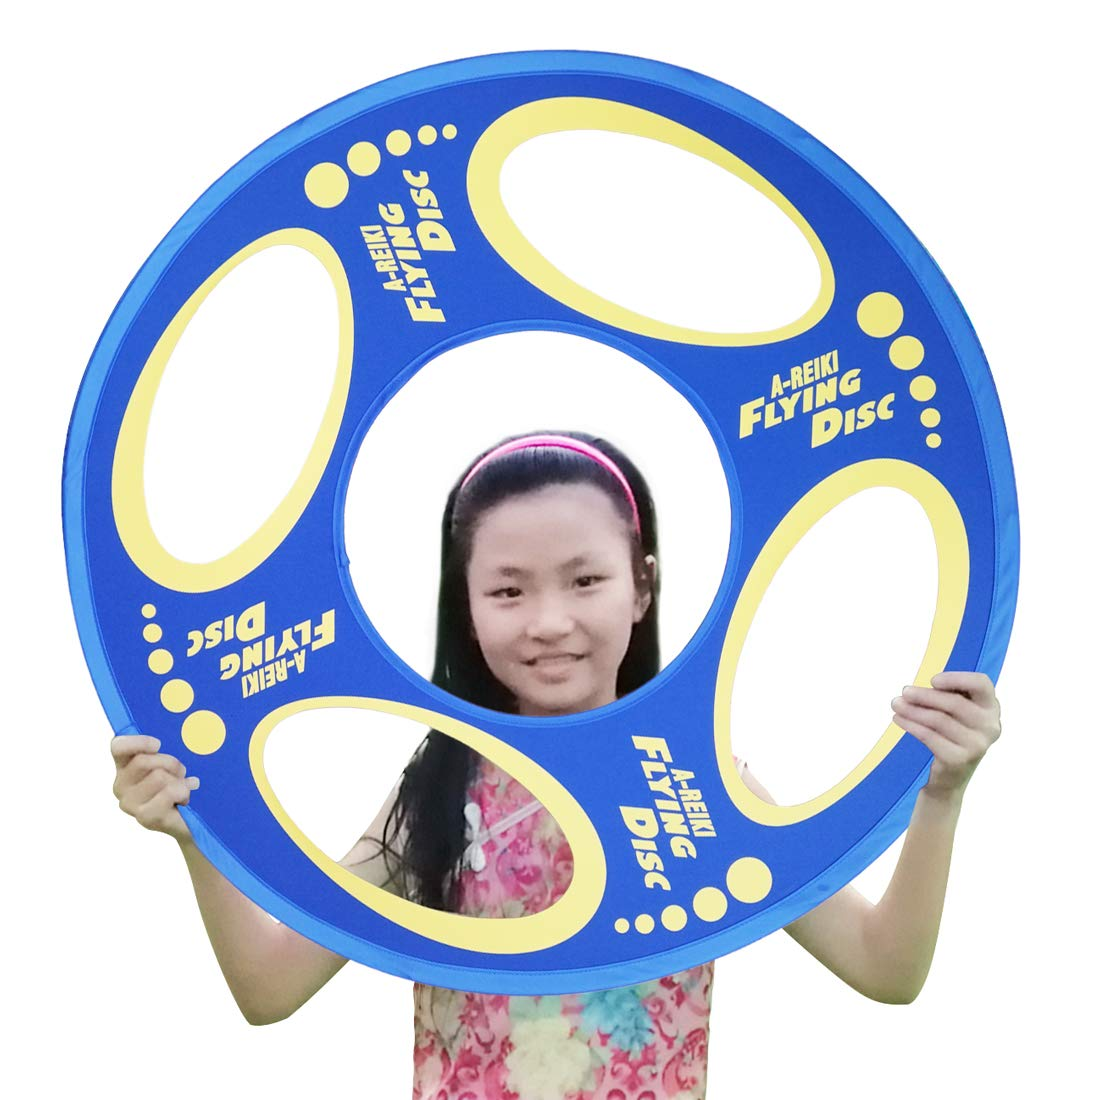 A-REIKI Frisbee for Adult Kids Flying Disc Outdoor Play